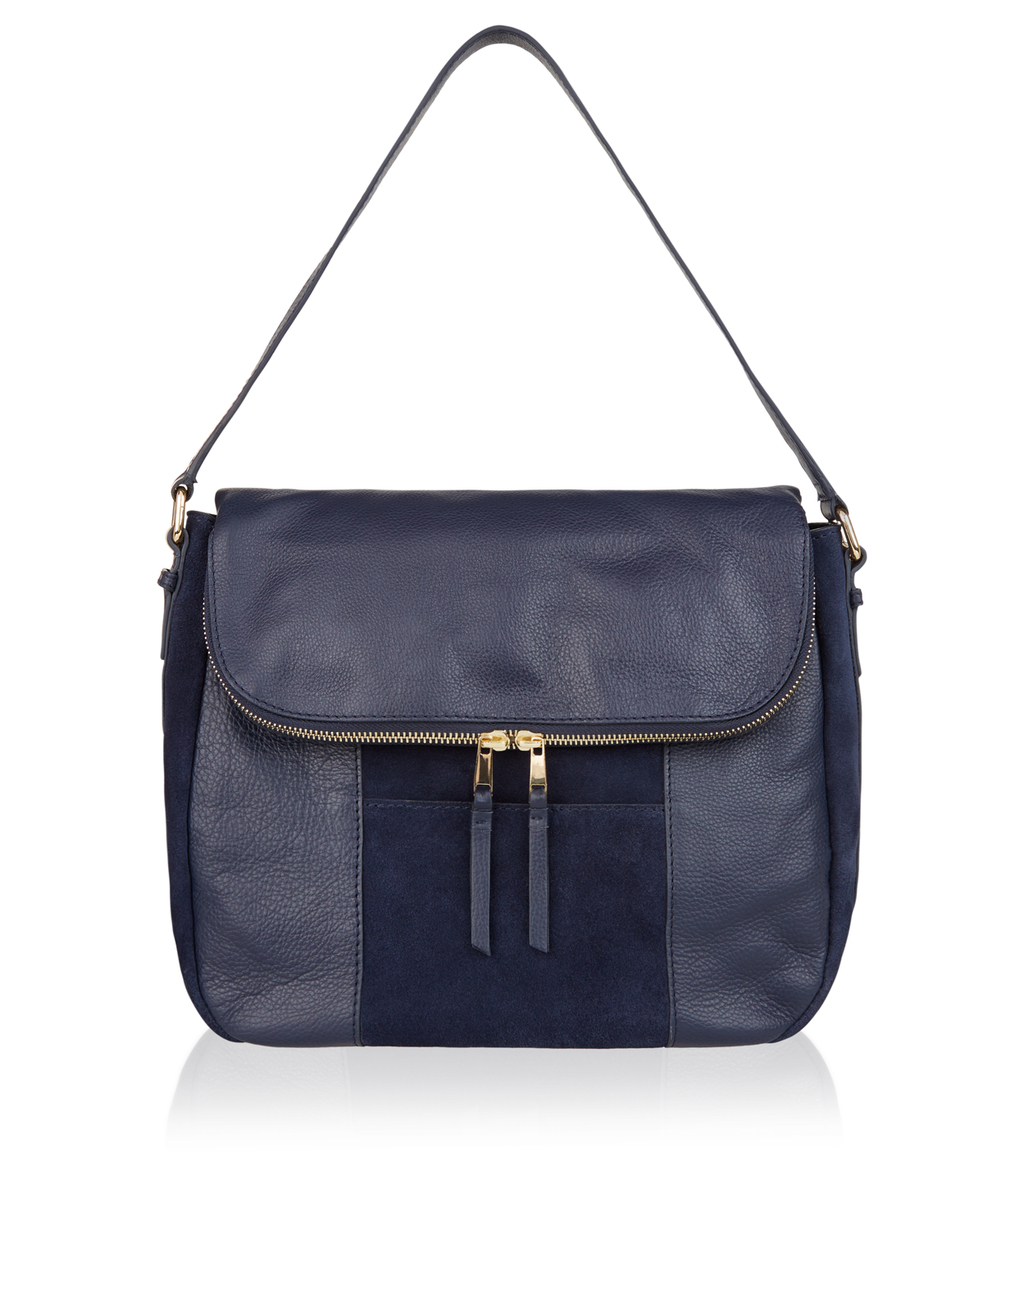 Calypso Suede And Leather Shoulder Bag - predominant colour: navy; occasions: casual, creative work; type of pattern: standard; style: shoulder; length: shoulder (tucks under arm); size: standard; material: leather; pattern: plain; finish: plain; season: a/w 2016